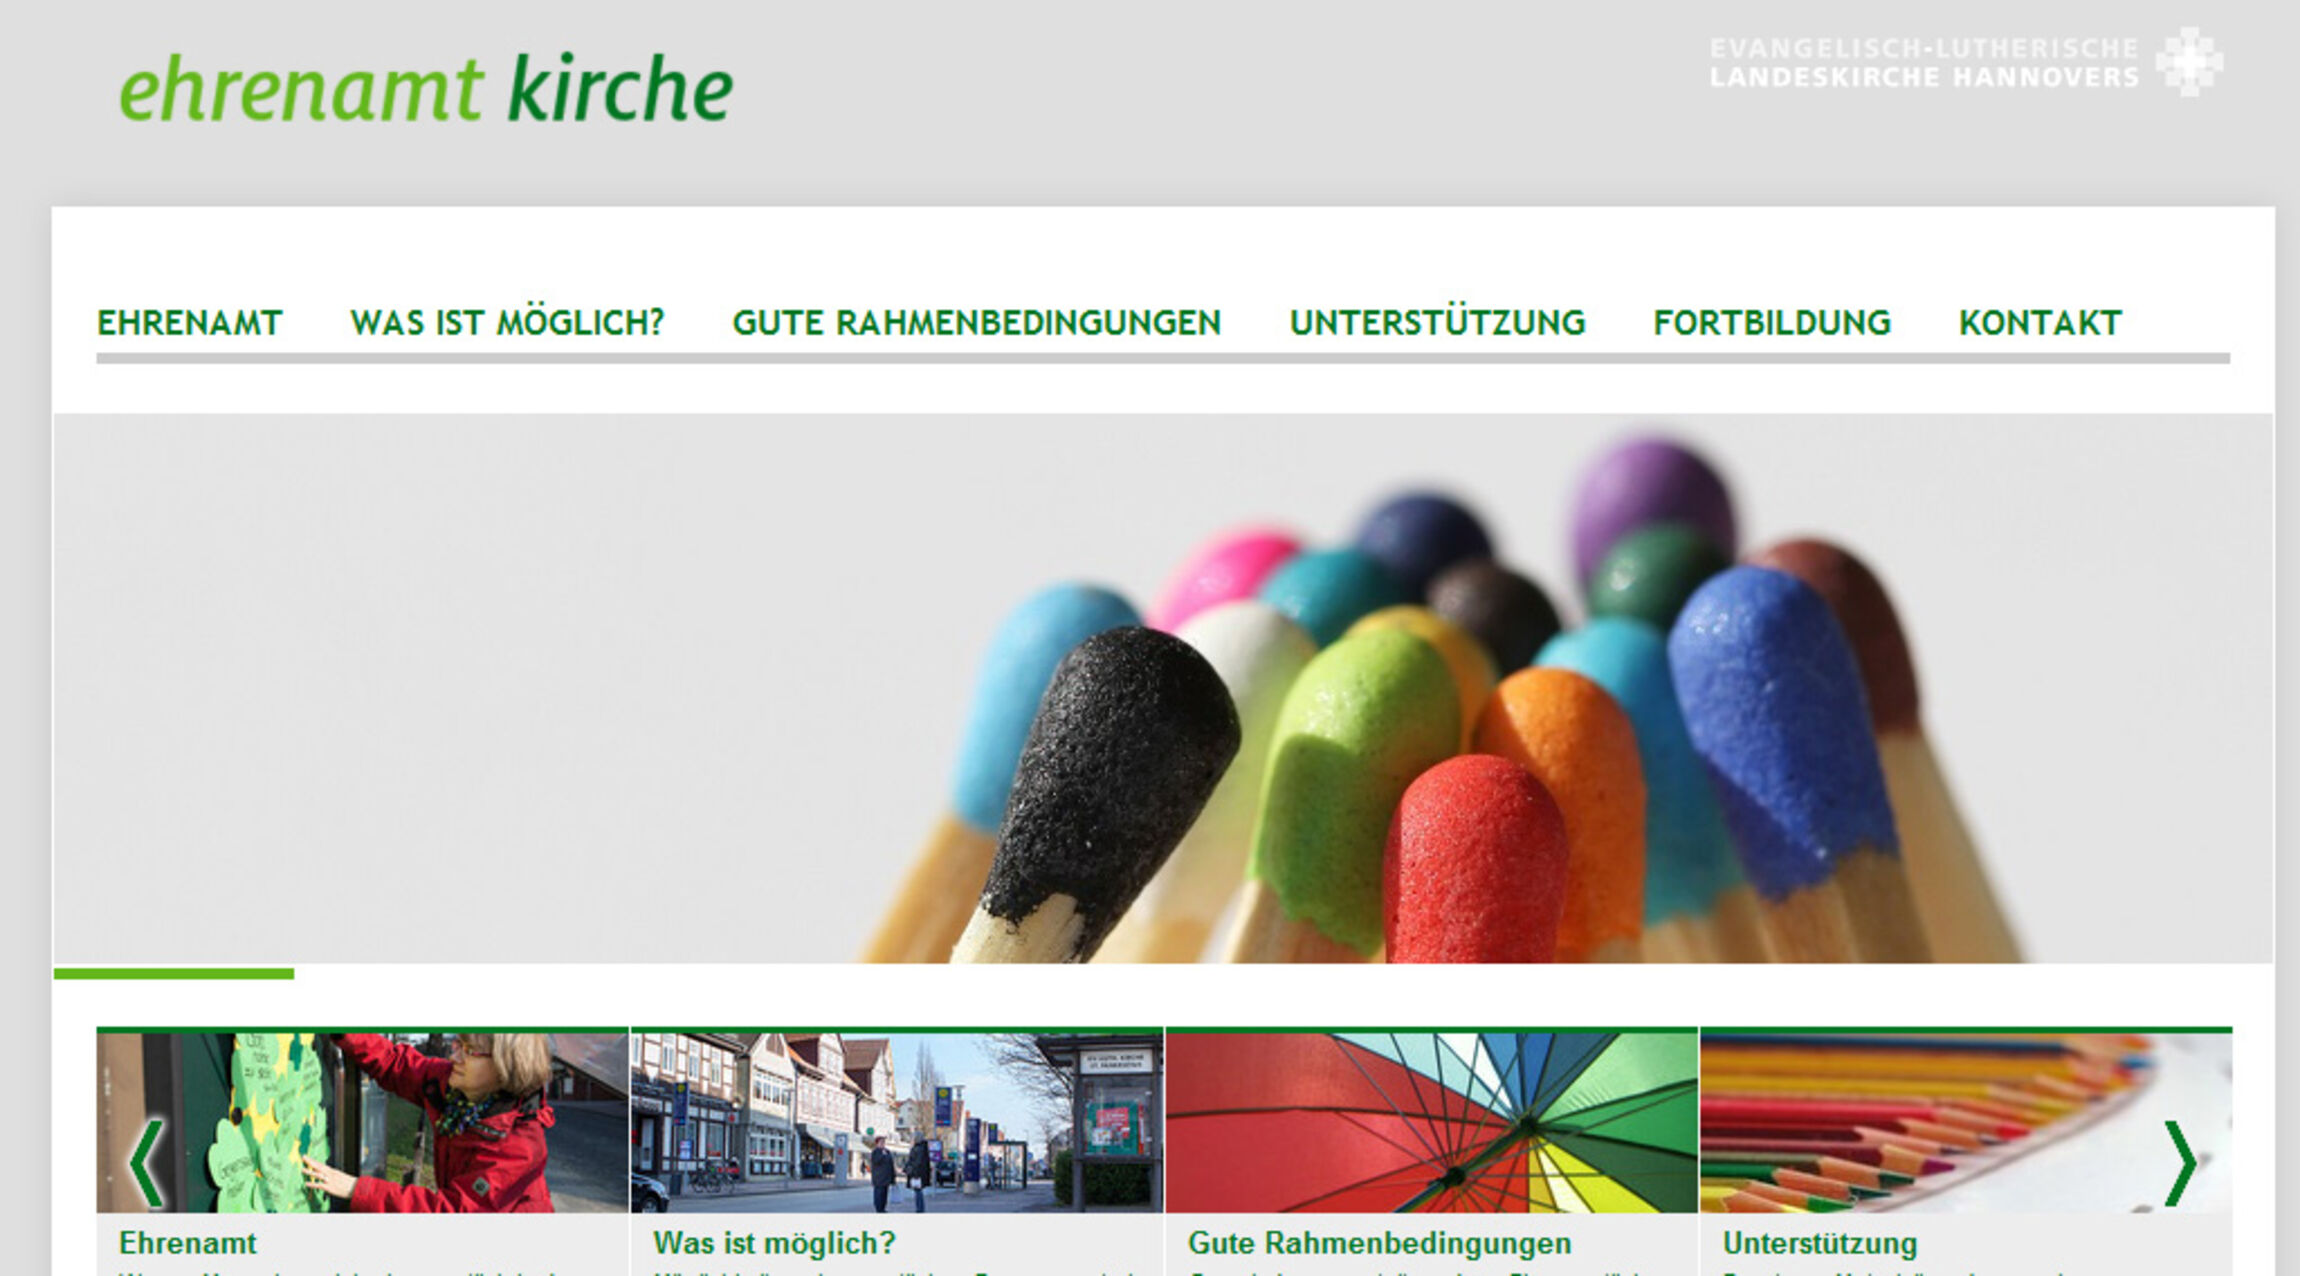 ehrenamt kriche website